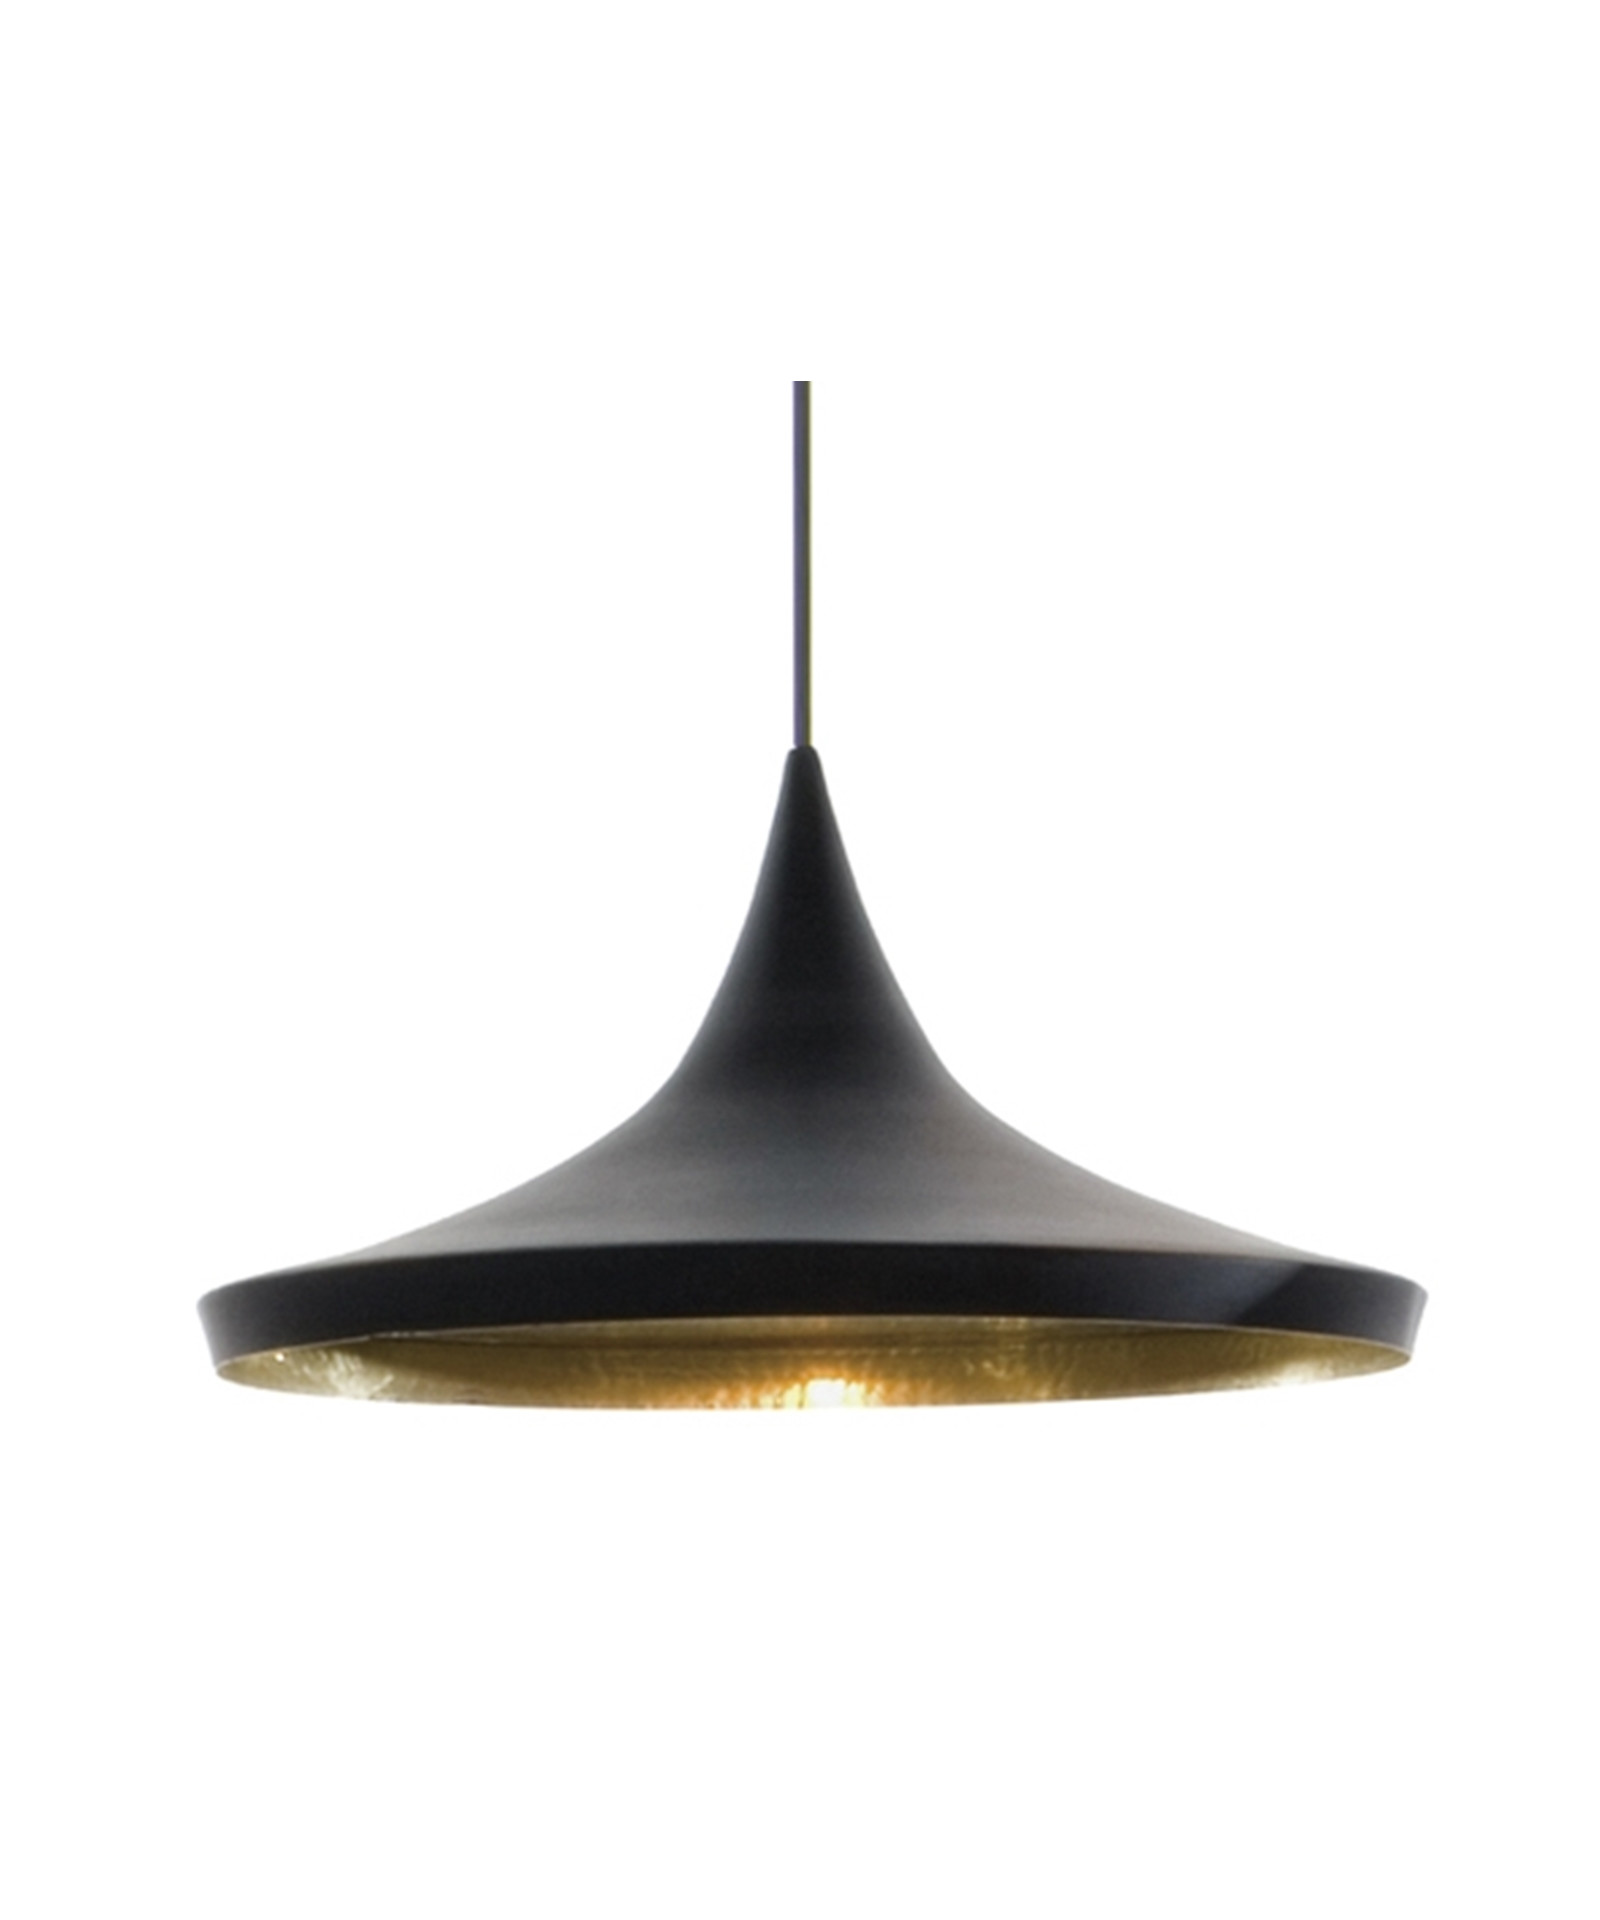 Badezimmer Lampe Hue Beat Light Wide Pendelleuchte Schwarz - Tom Dixon